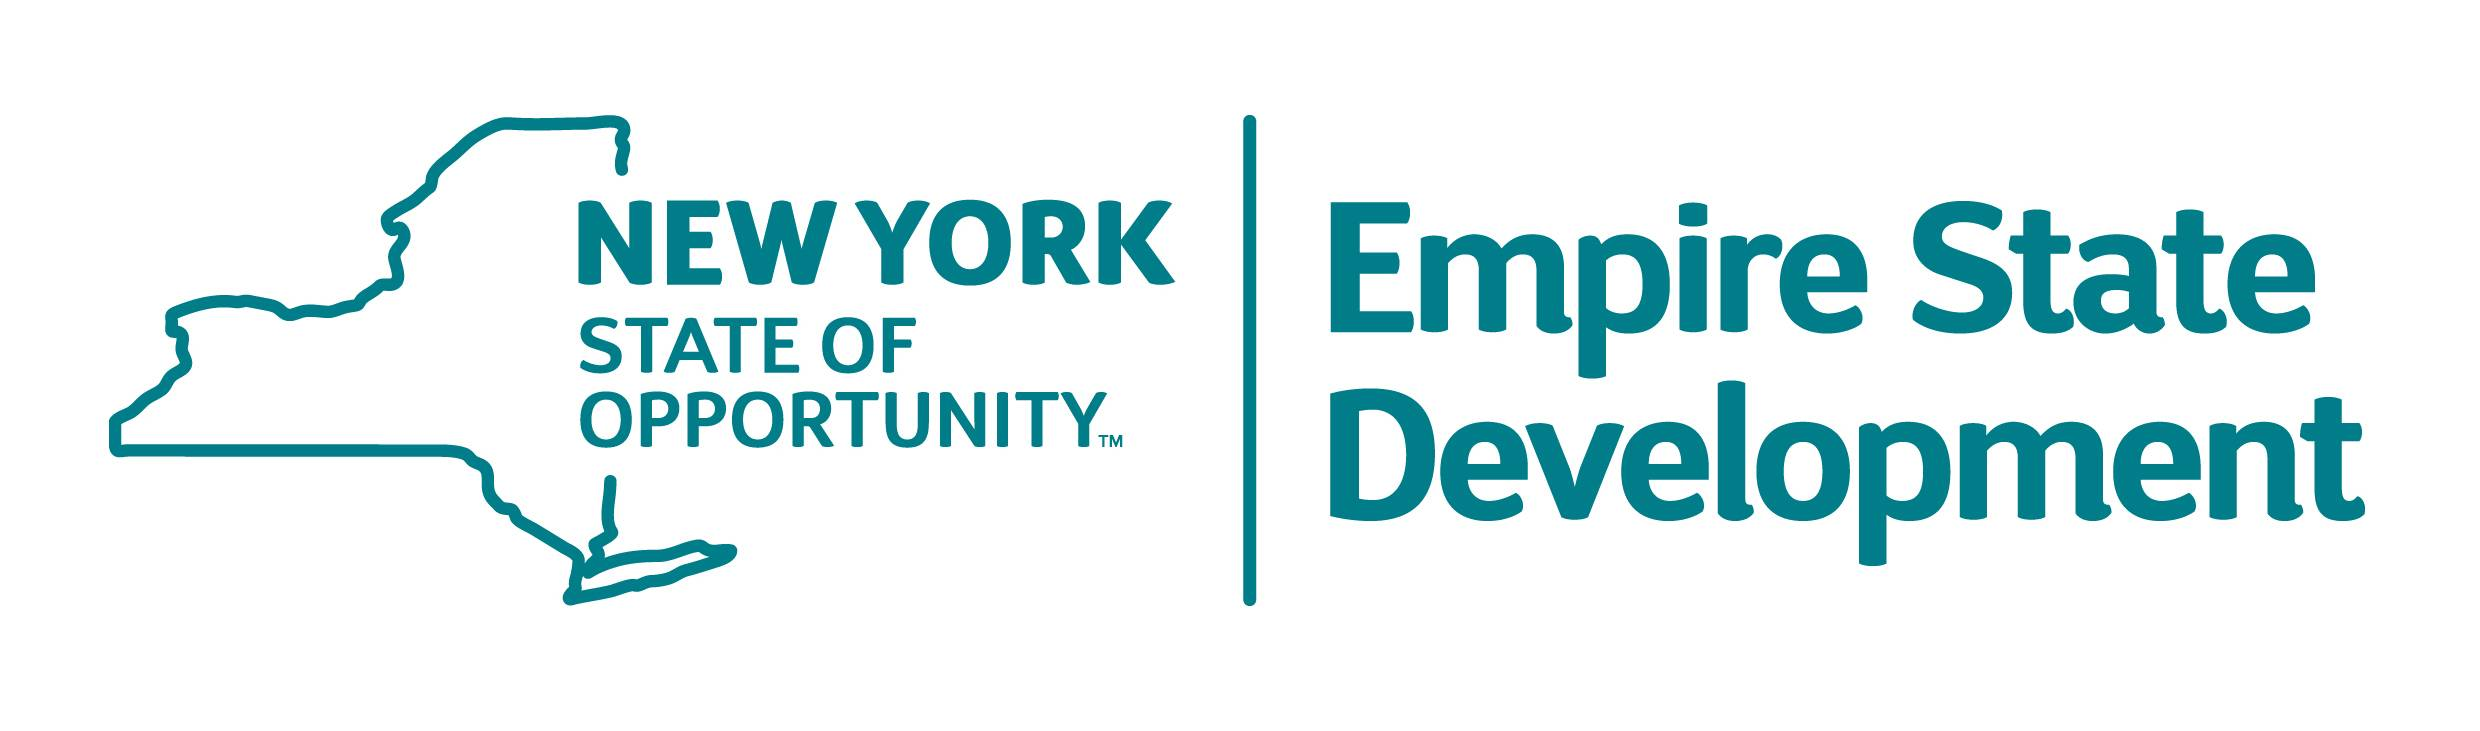 Logo of Empire State Development